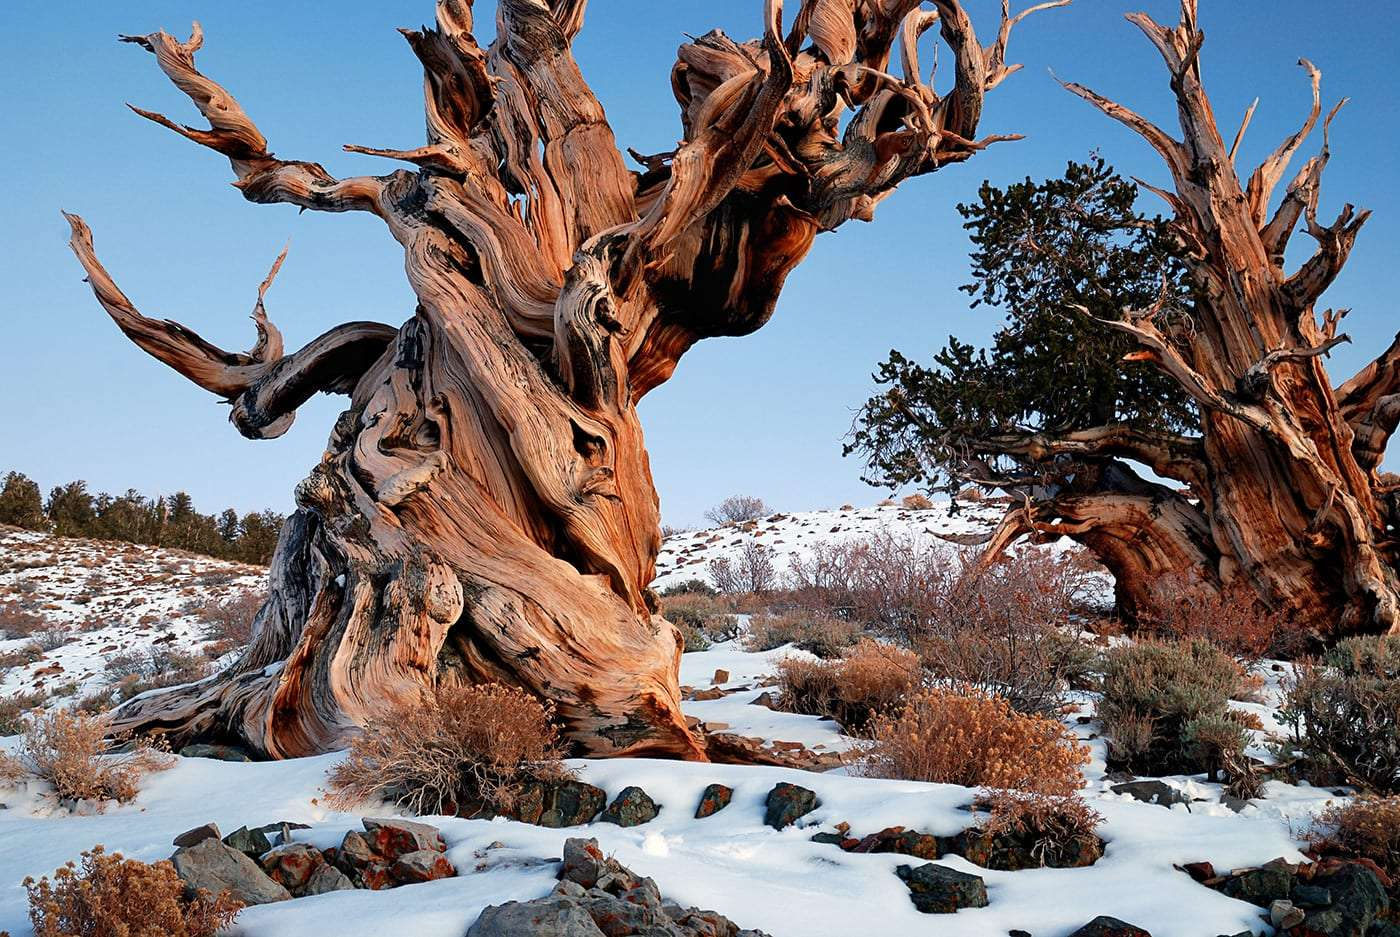 two thick ancient bristecone pines